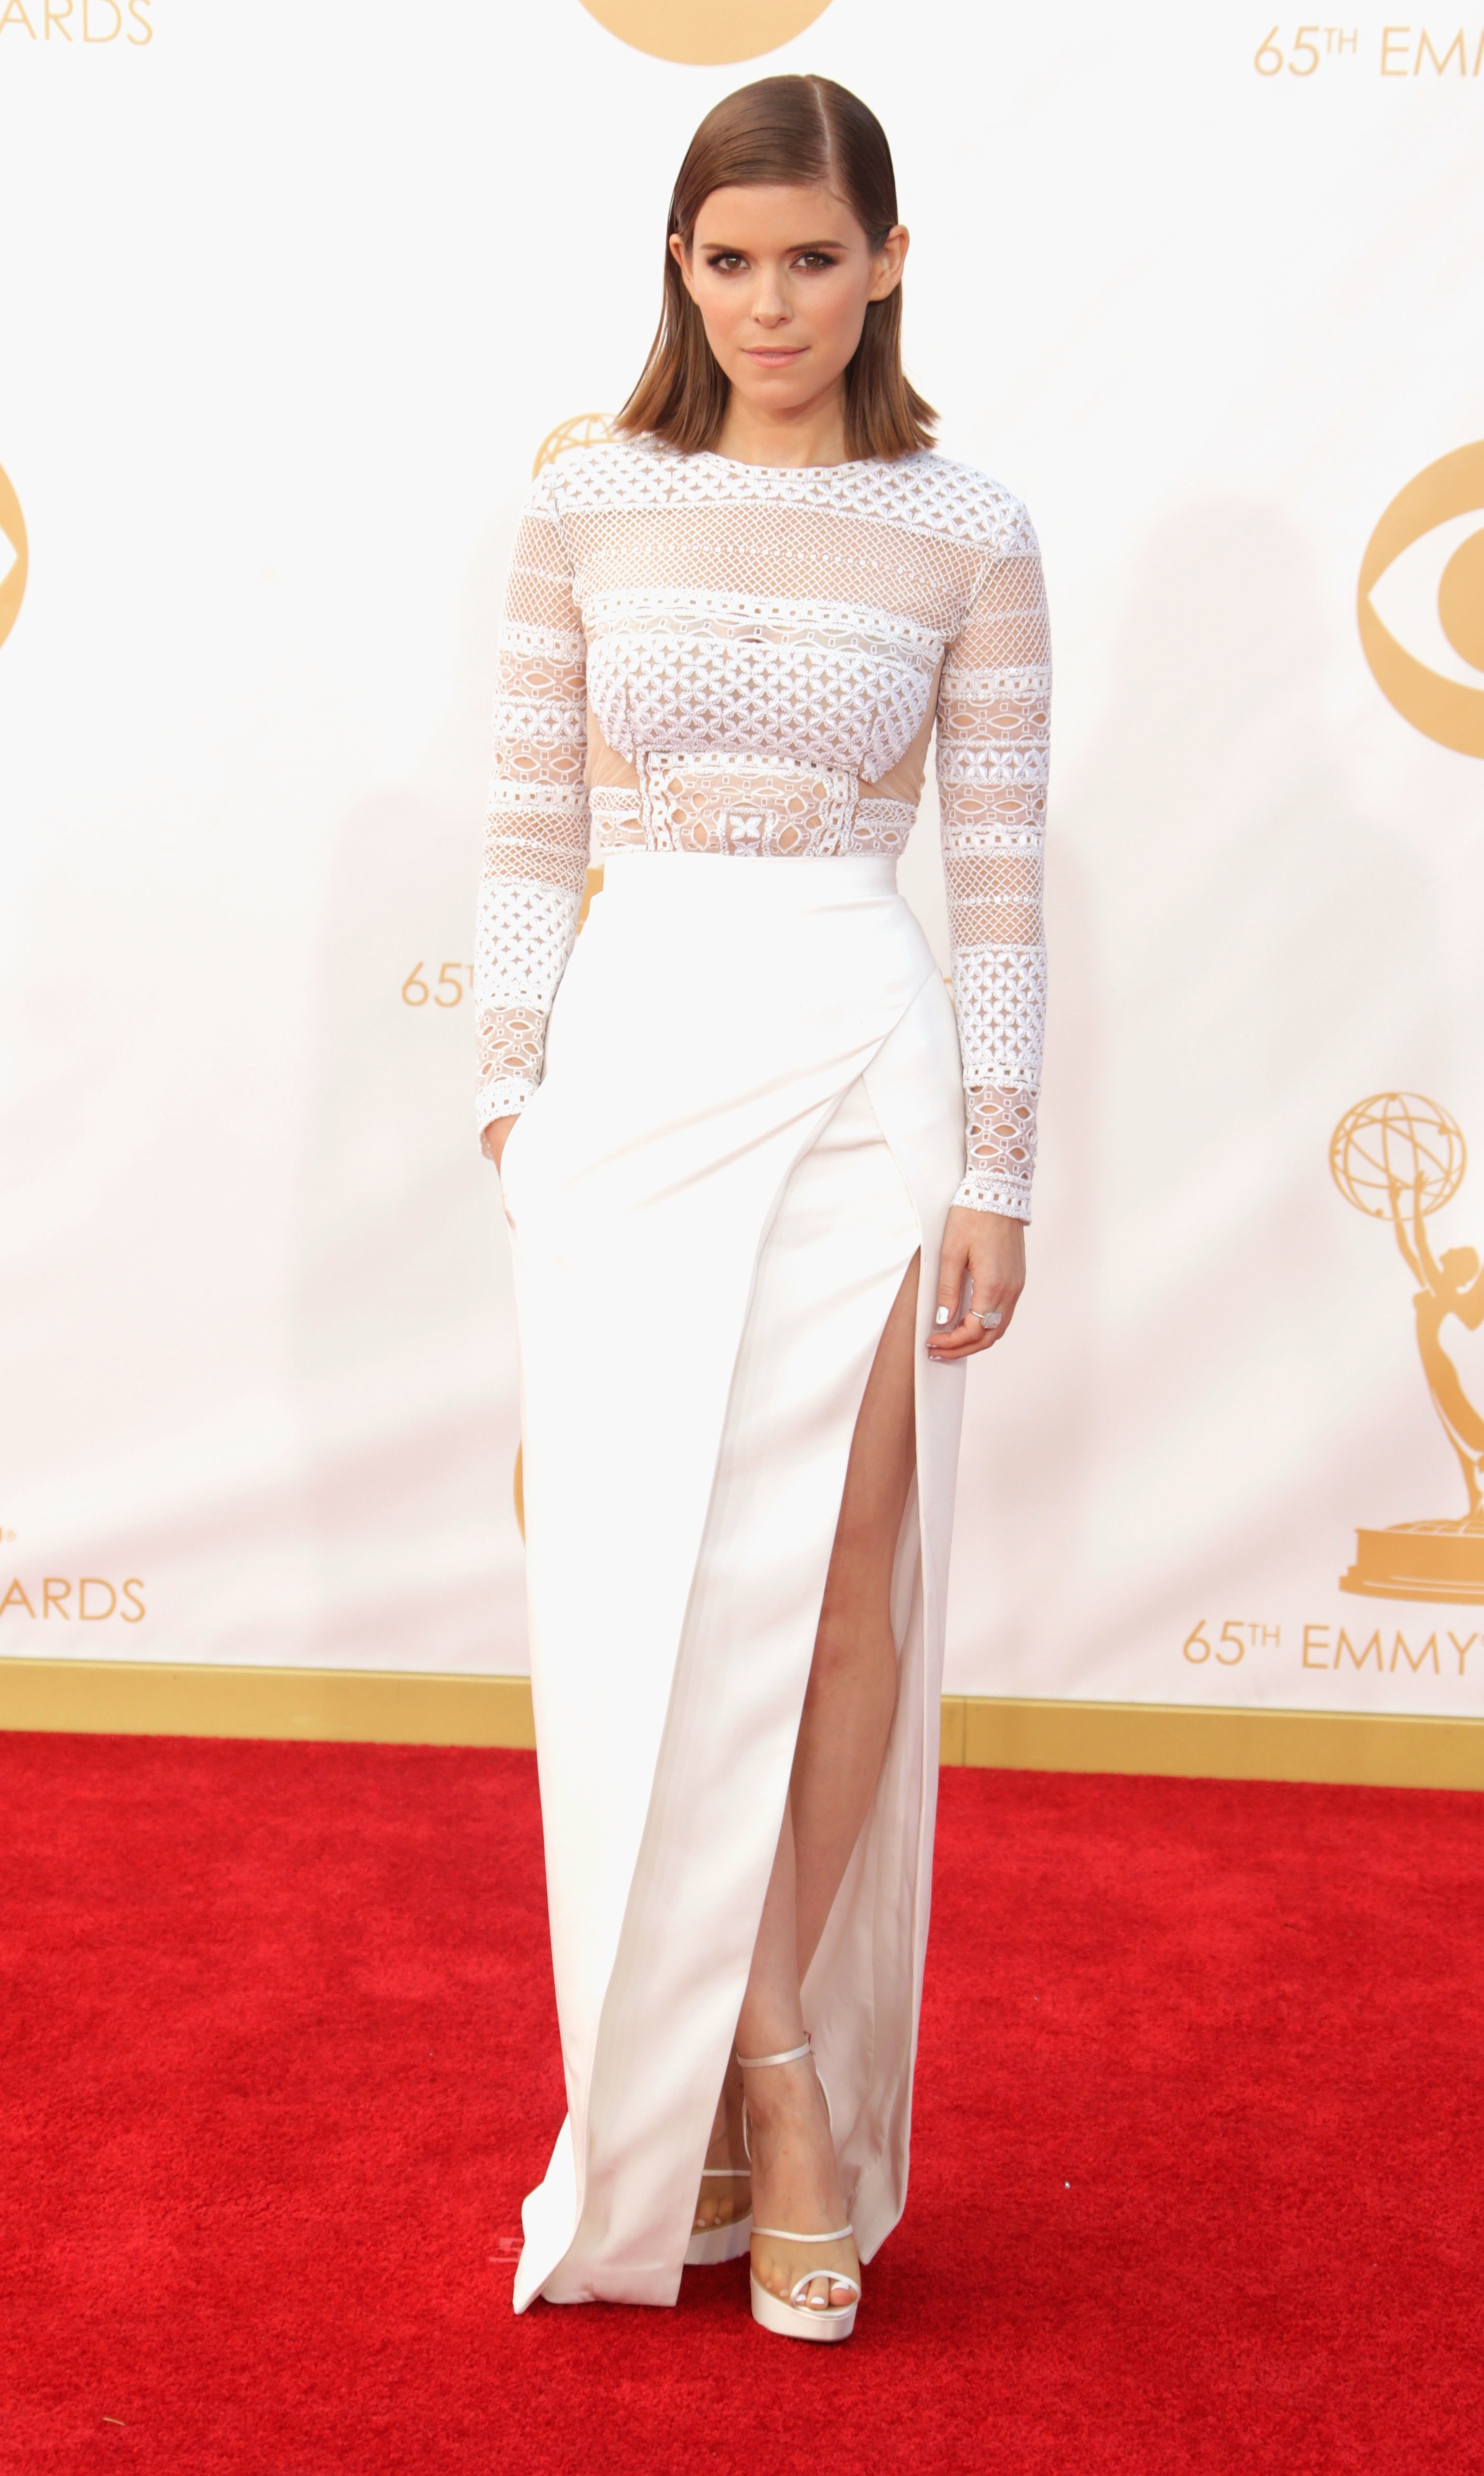 House of Cards star Kate Mara tends towards a basic t-shirt-and-jeans look on House of Cards, but she stepped it up for the Emmys in this fashion-forward J Mendel look. That slit, though?